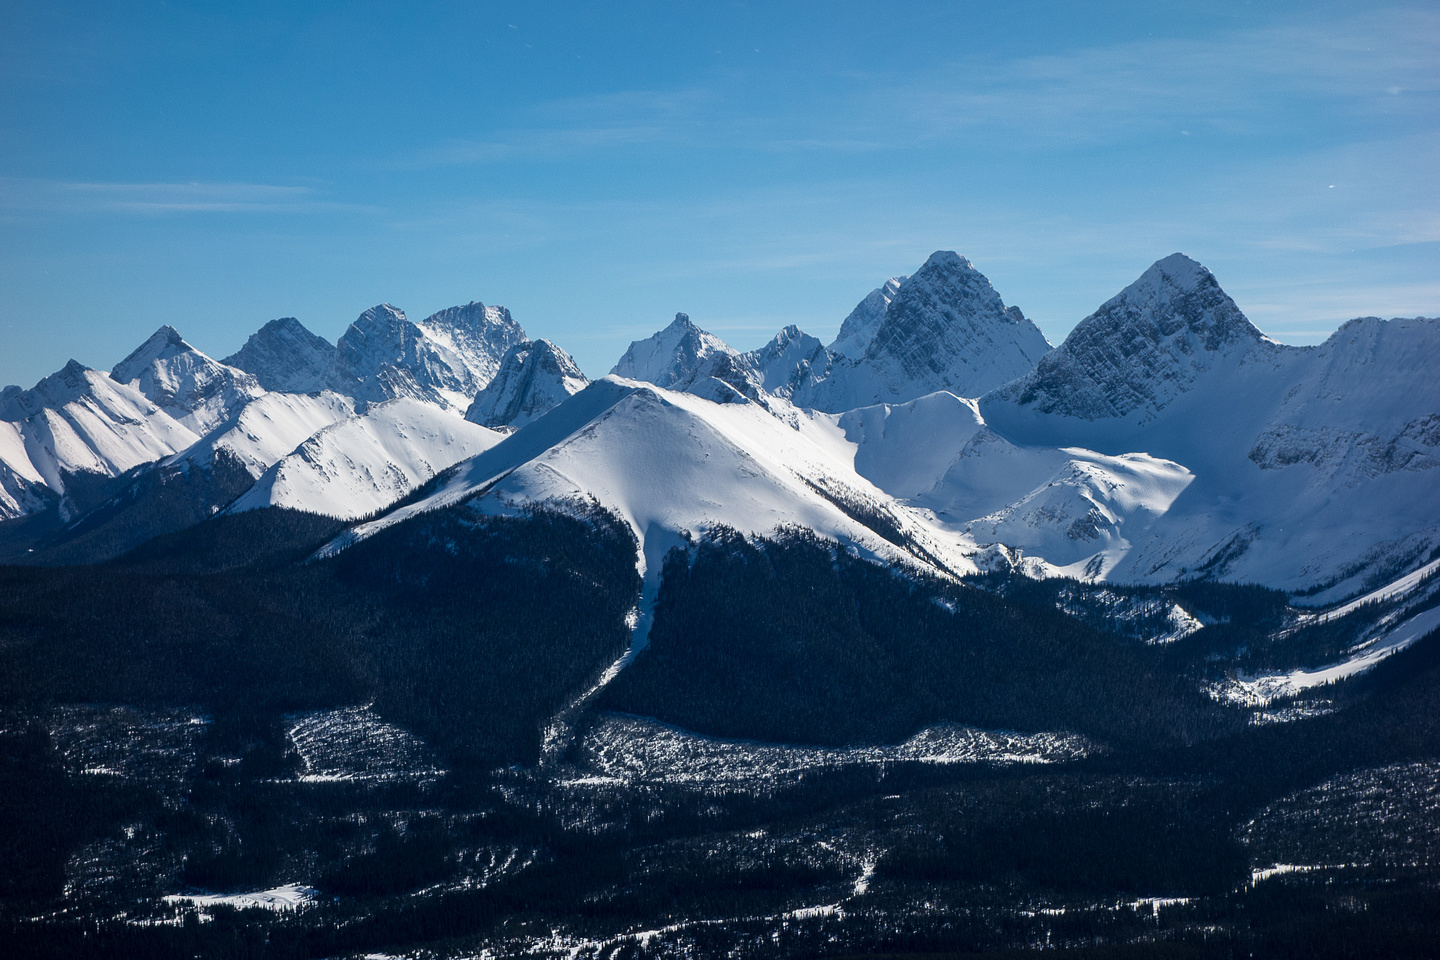 Tent Ridge at the Burstall Pass / Haig Icefield area peaks including (l to r) Murray, Smith Dorrien, French, Commonwealth, Robertson, Sir Douglas, Birdwood and Smuts.